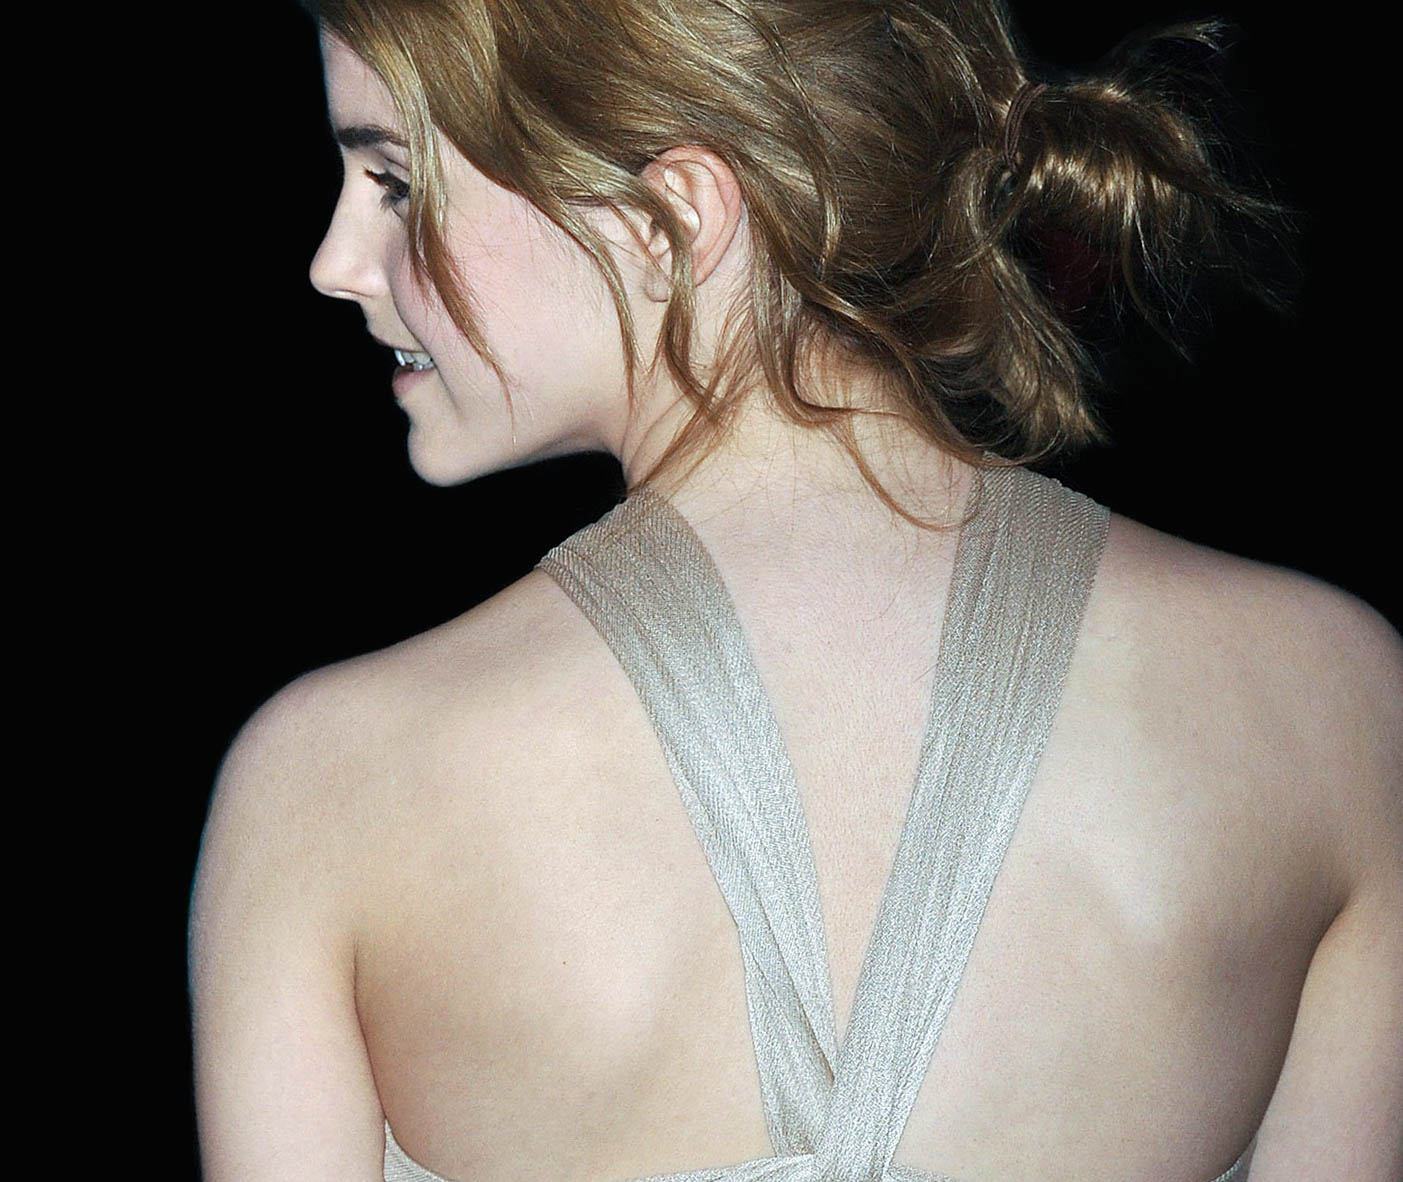 Emma Watson in Italian Vogue Covers Wallpapers in jpg format for